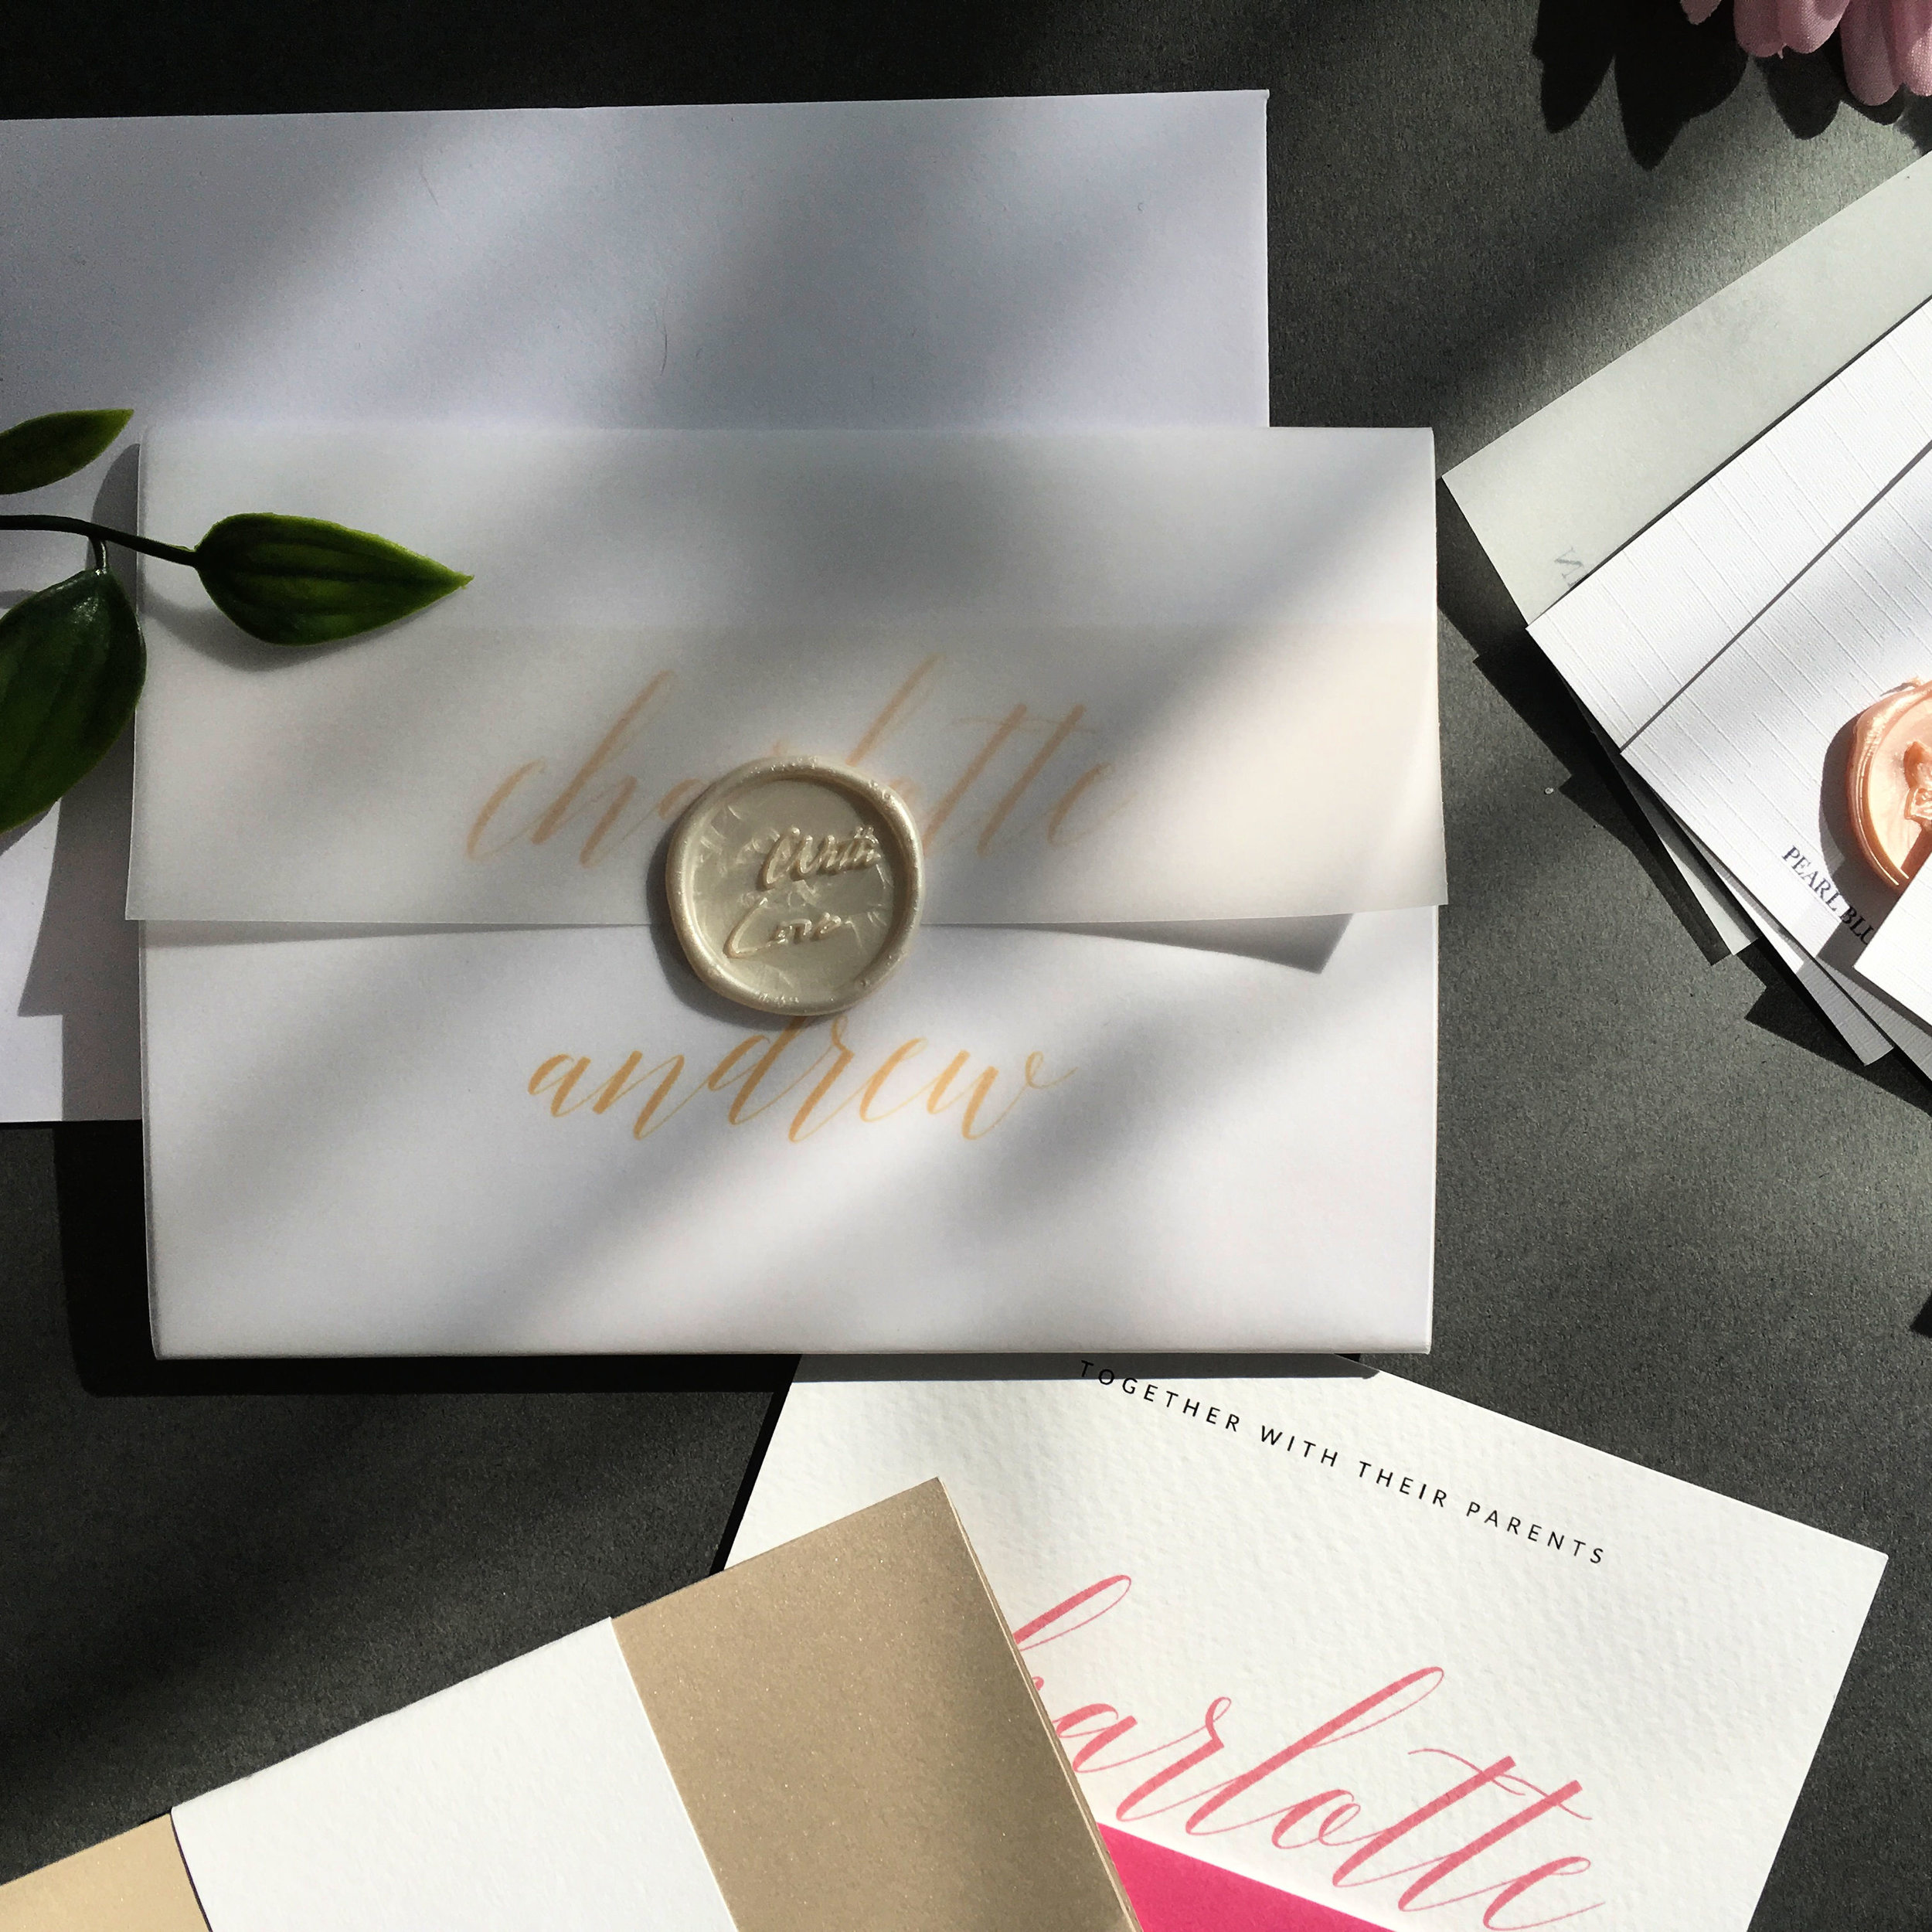 Hoxton - Concertina Invitation with Vellum Jacket and Wax Seal